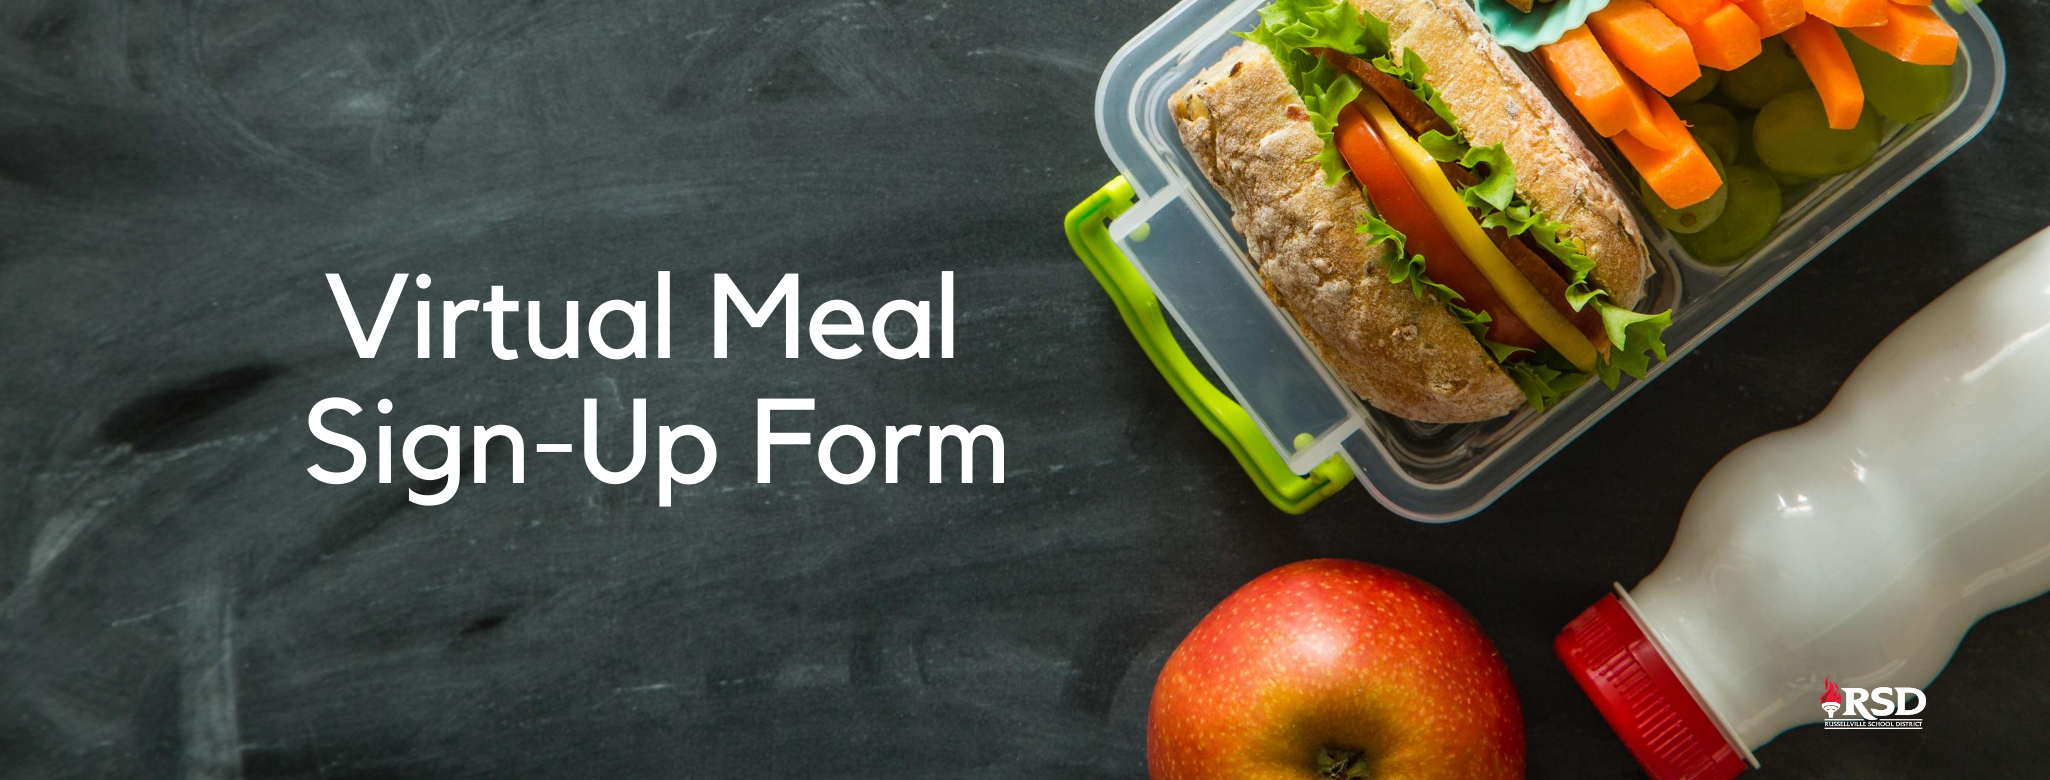 VIRTUAL MEAL SIGN-UP FORM